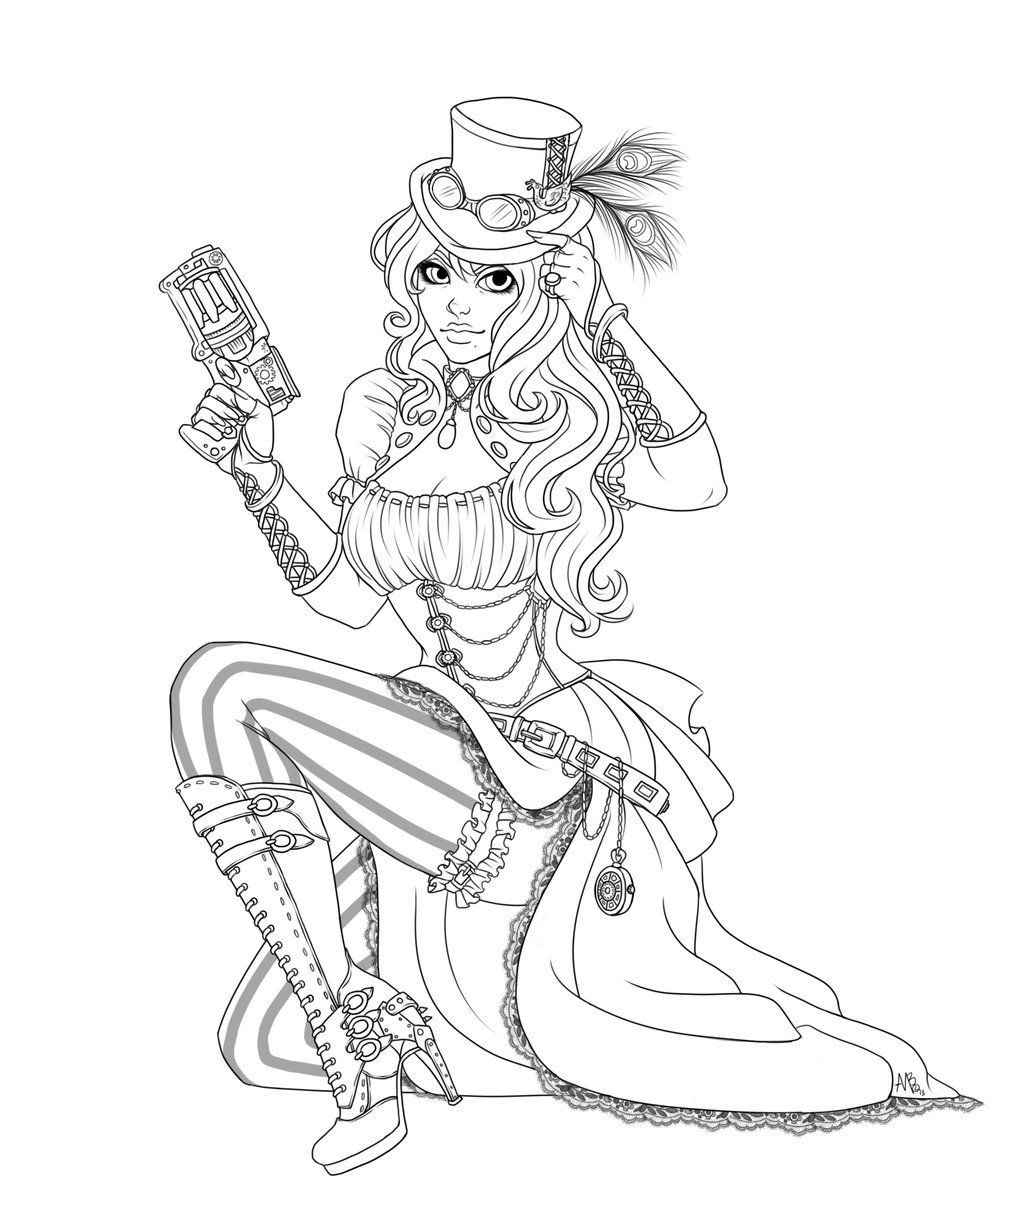 Generic princess coloring pages - Steampunk Girl Commission From Harpyqueen By Vmpwraith Deviantart Com On Deviantart